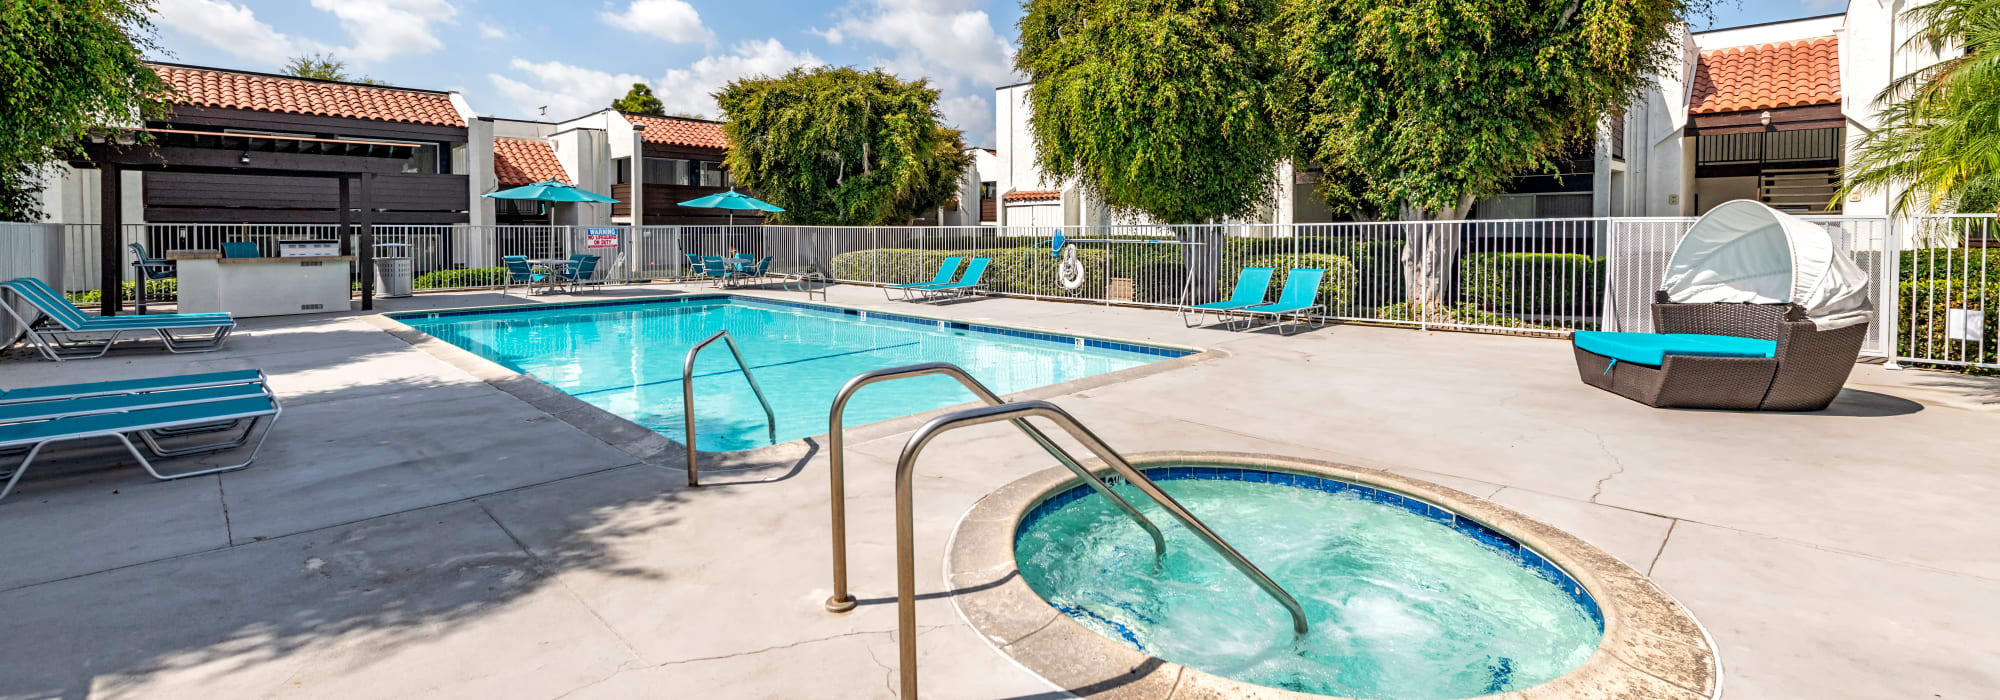 Amenities at Kendallwood Apartments in Whittier, California